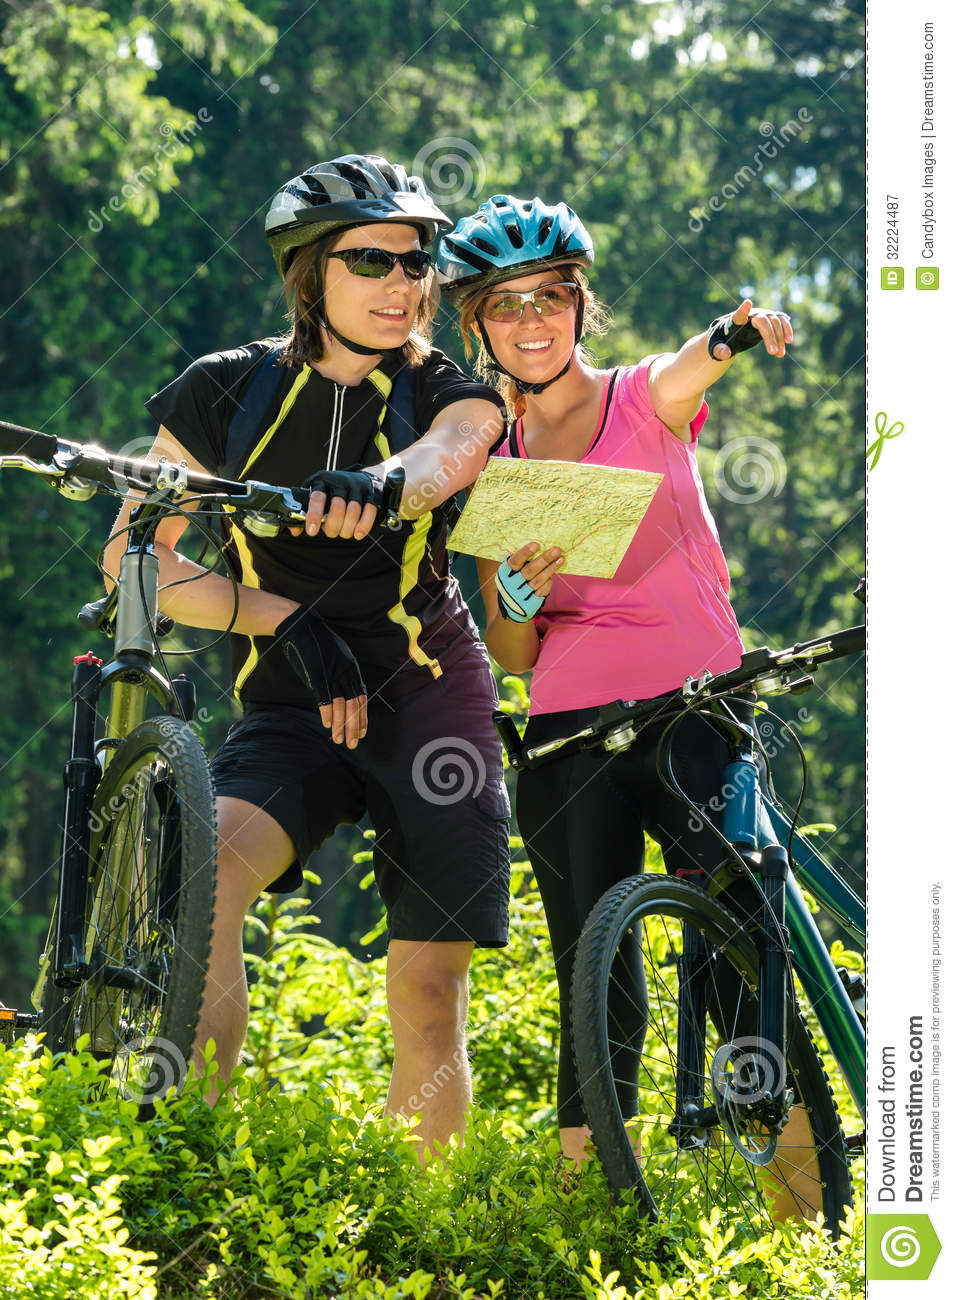 Cheerful bikers checking the map royalty free stock for Cheerful nature